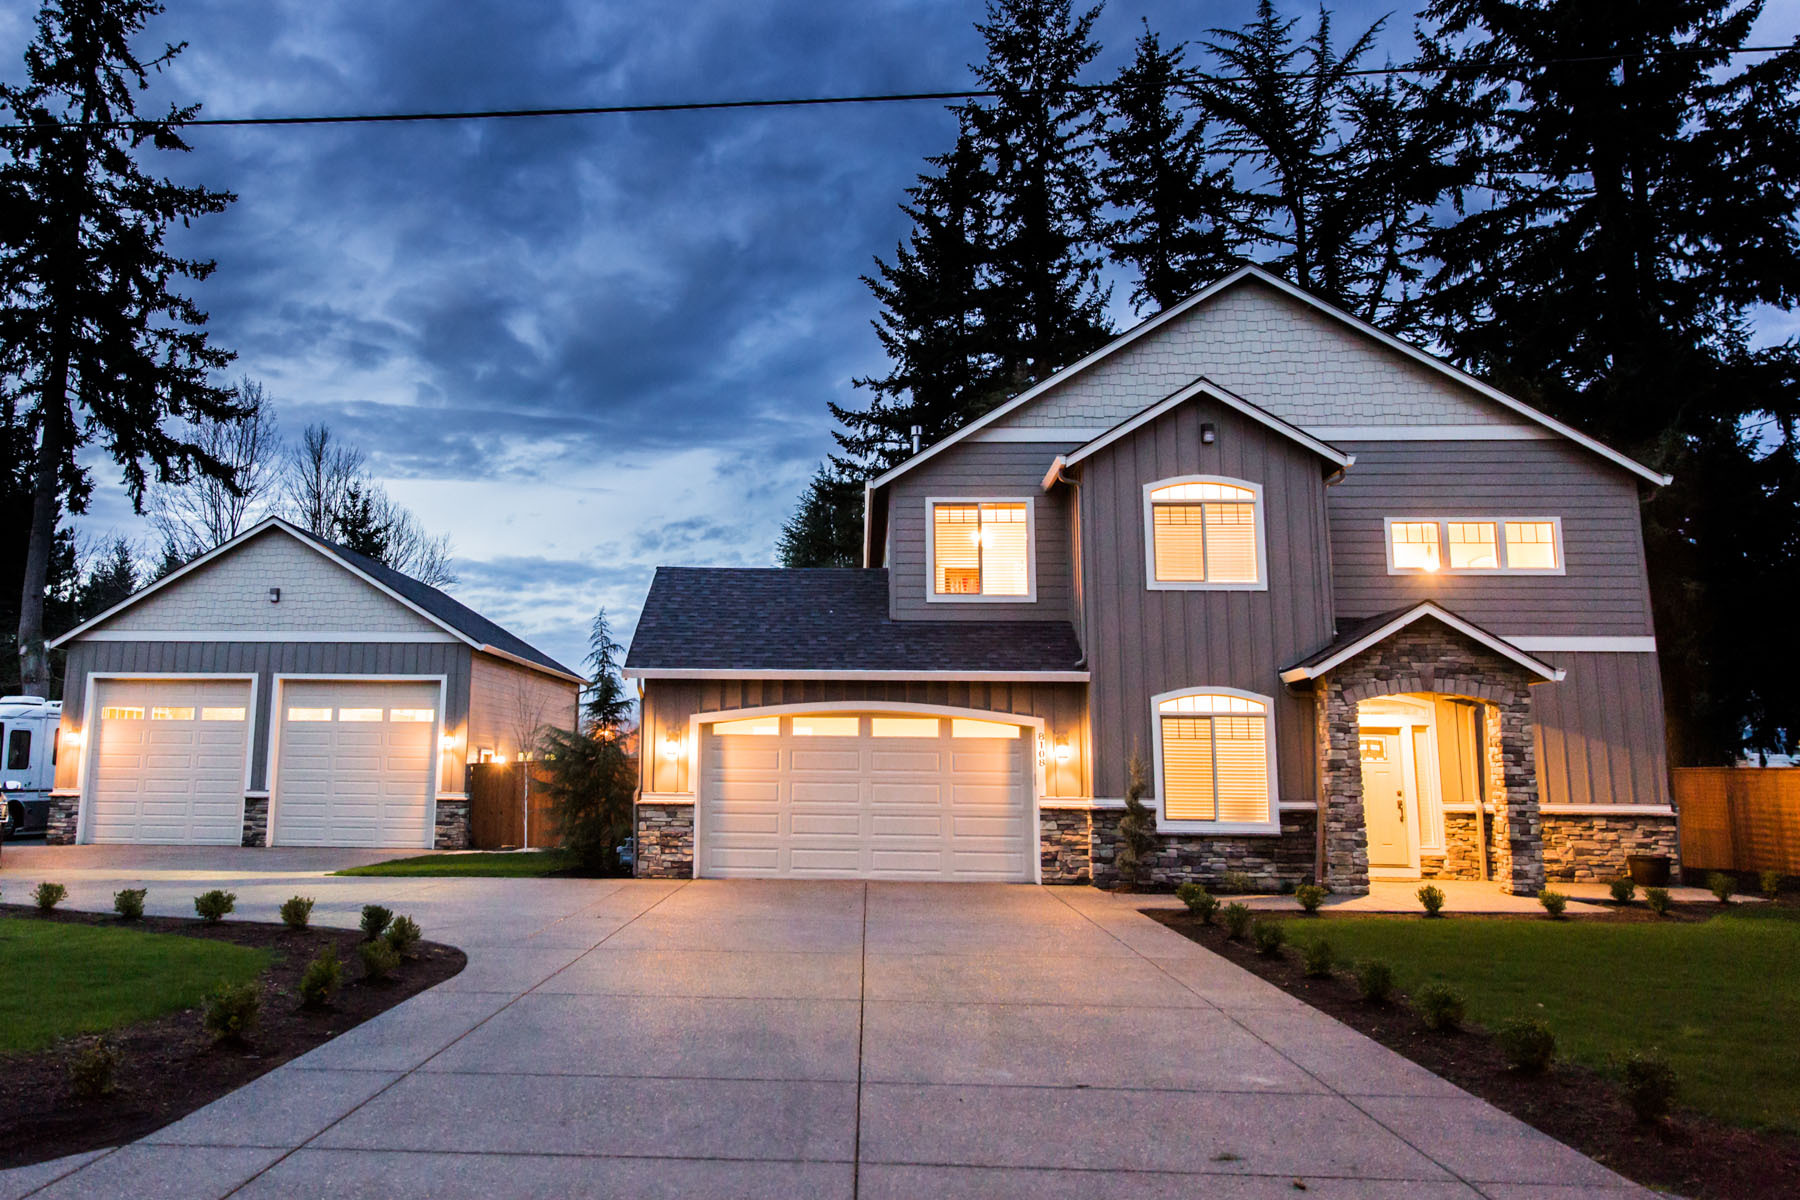 NW Elite Homes, clark county home builder